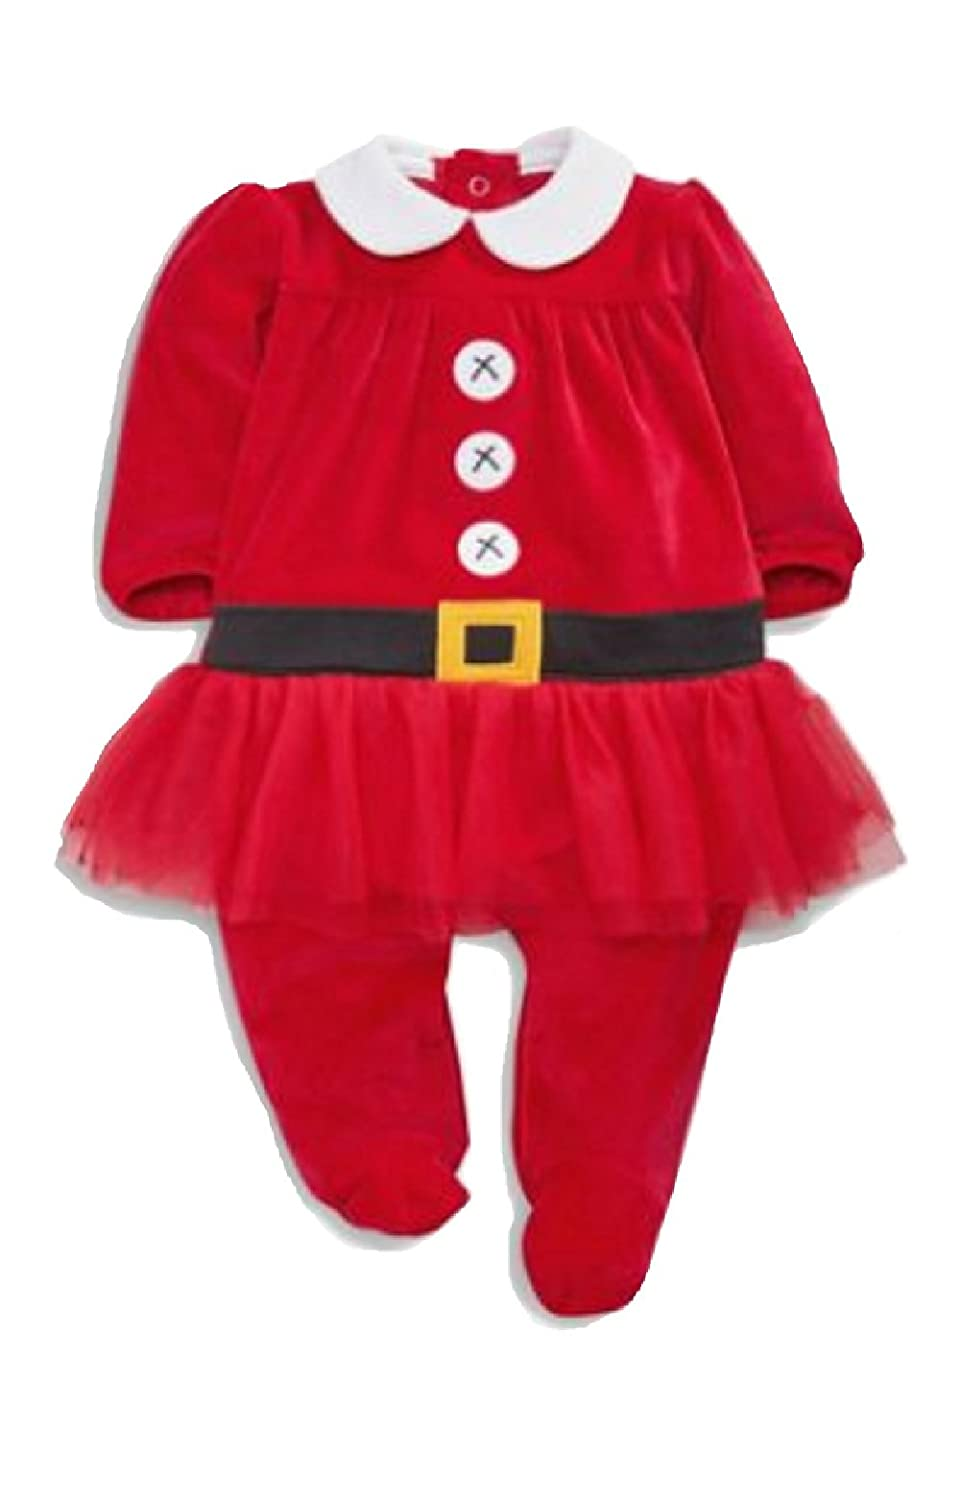 4bb050c350a Baby Girls Mrs Santa Velour Sleepsuit Festive Outfit (Up to 3 Months):  Amazon.co.uk: Baby